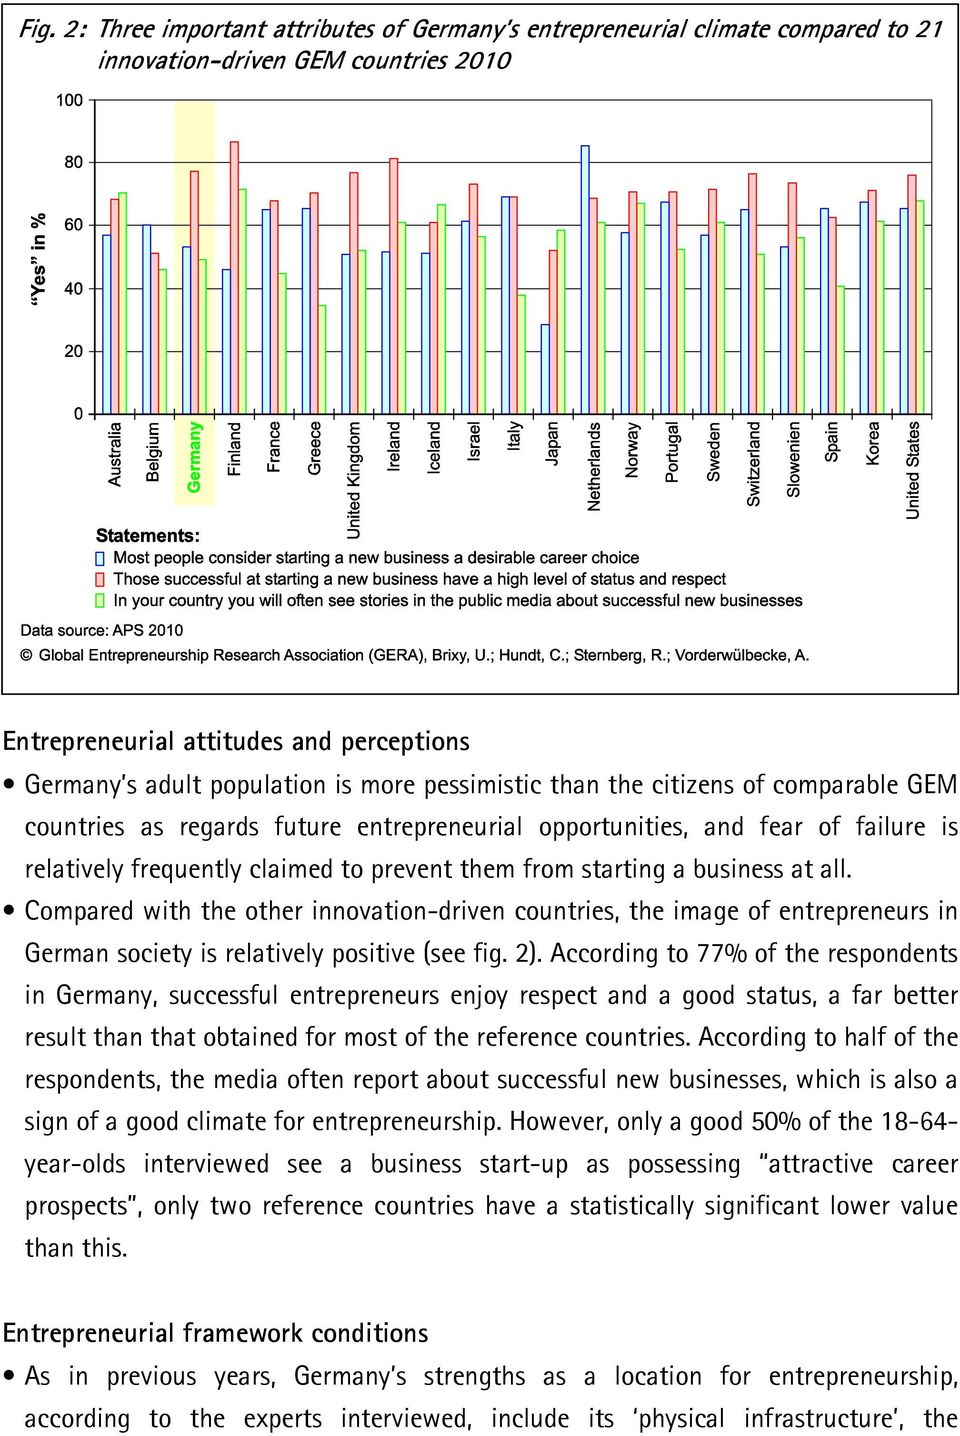 business at all. Compared with the other innovation-driven countries, the image of entrepreneurs in German society is relatively positive (see fig. 2).